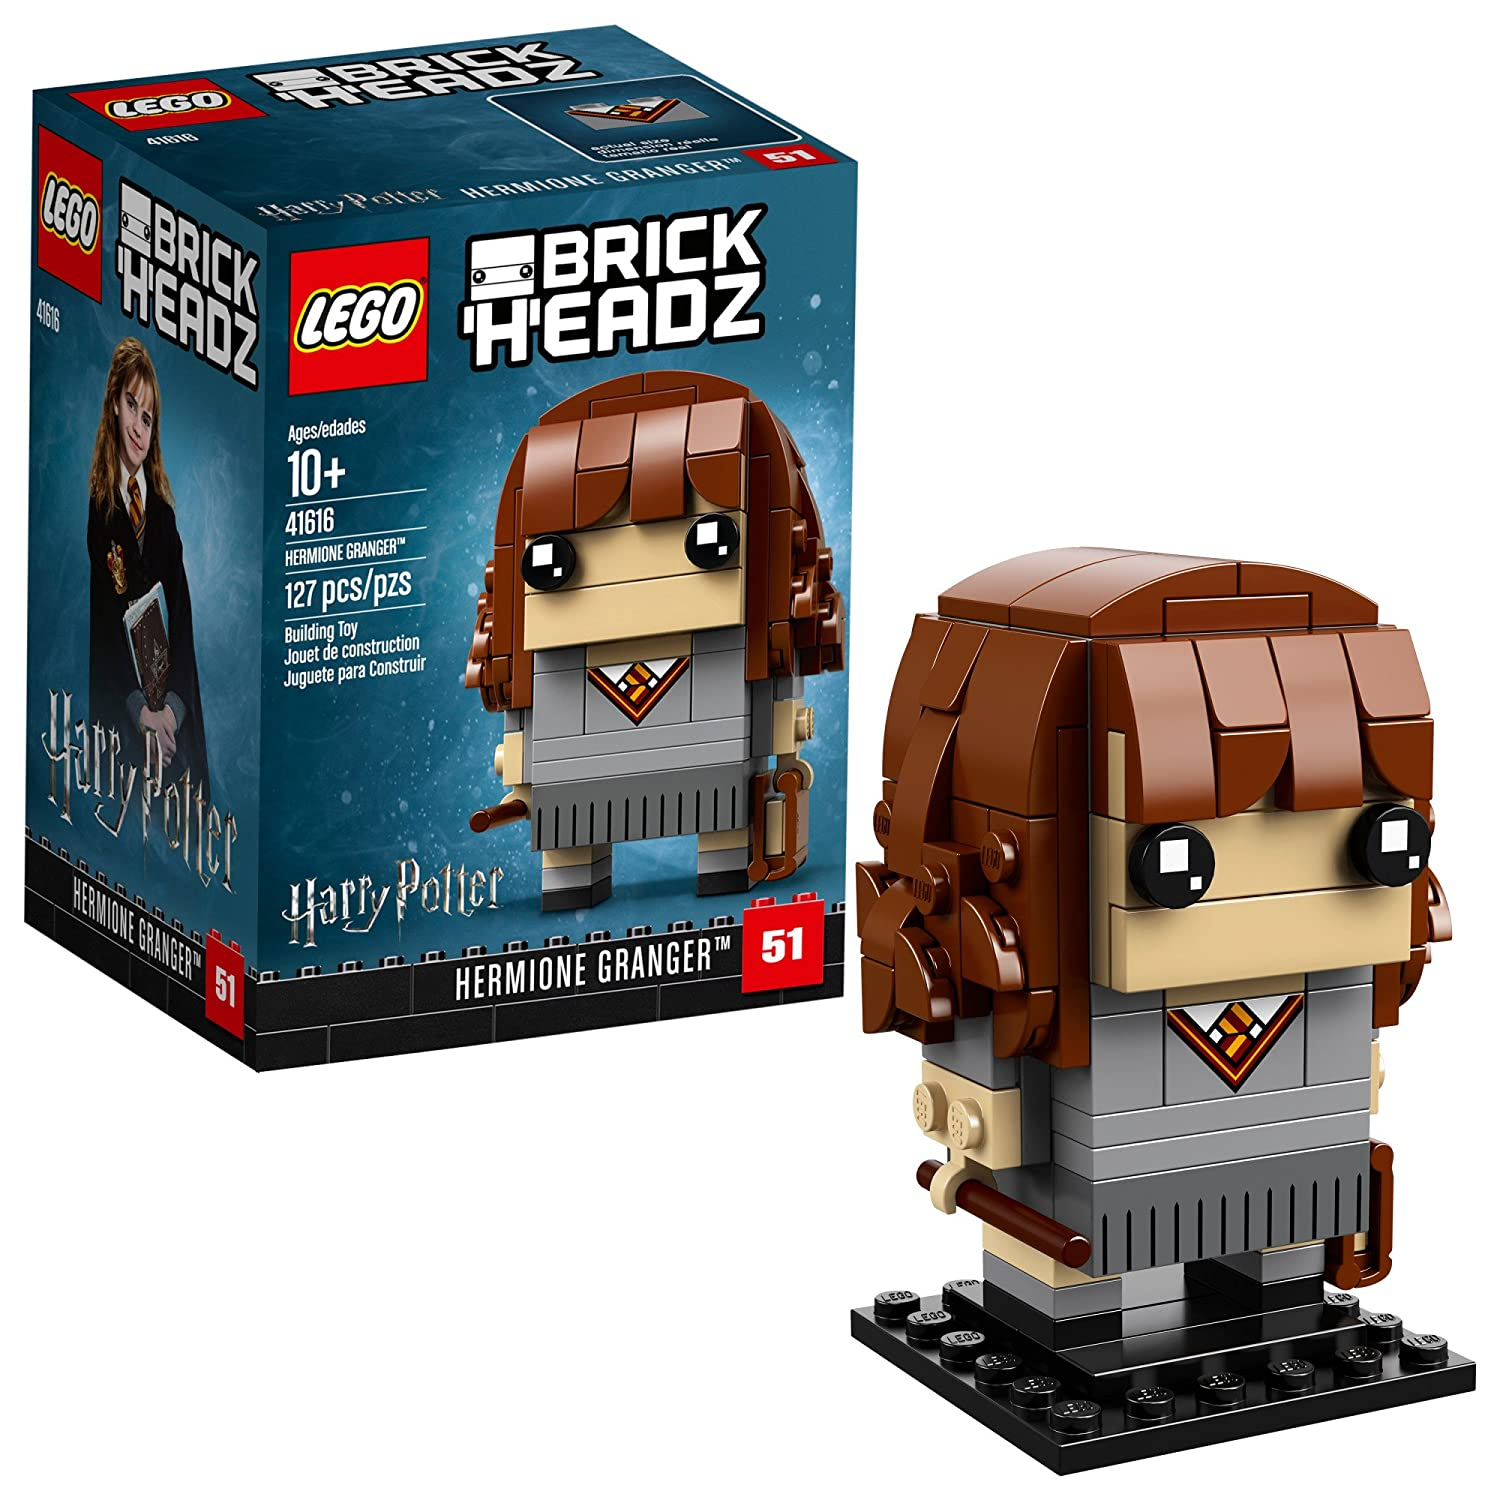 LEGO BrickHeadz Hermione Granger™ 41616 Building Kit (127 Piece), Multicolor CONF Good guy 1 41616